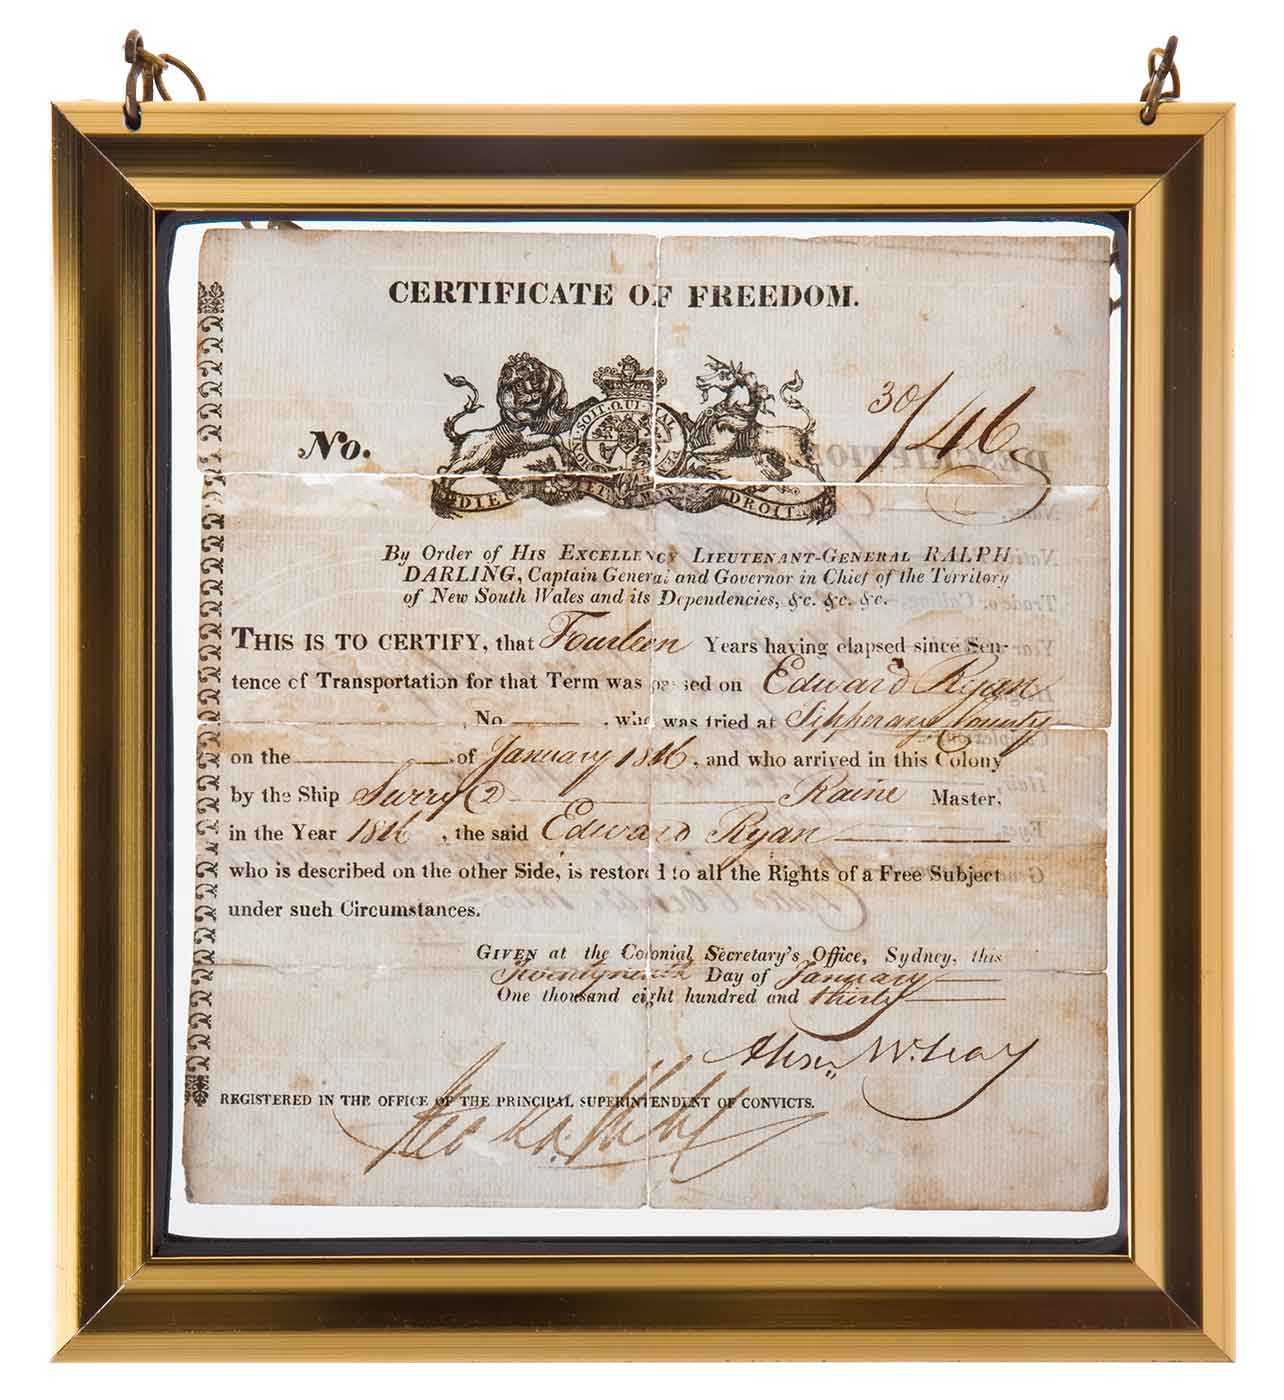 Framed certificate with title: CERTIFICATE OF FREEDOM.